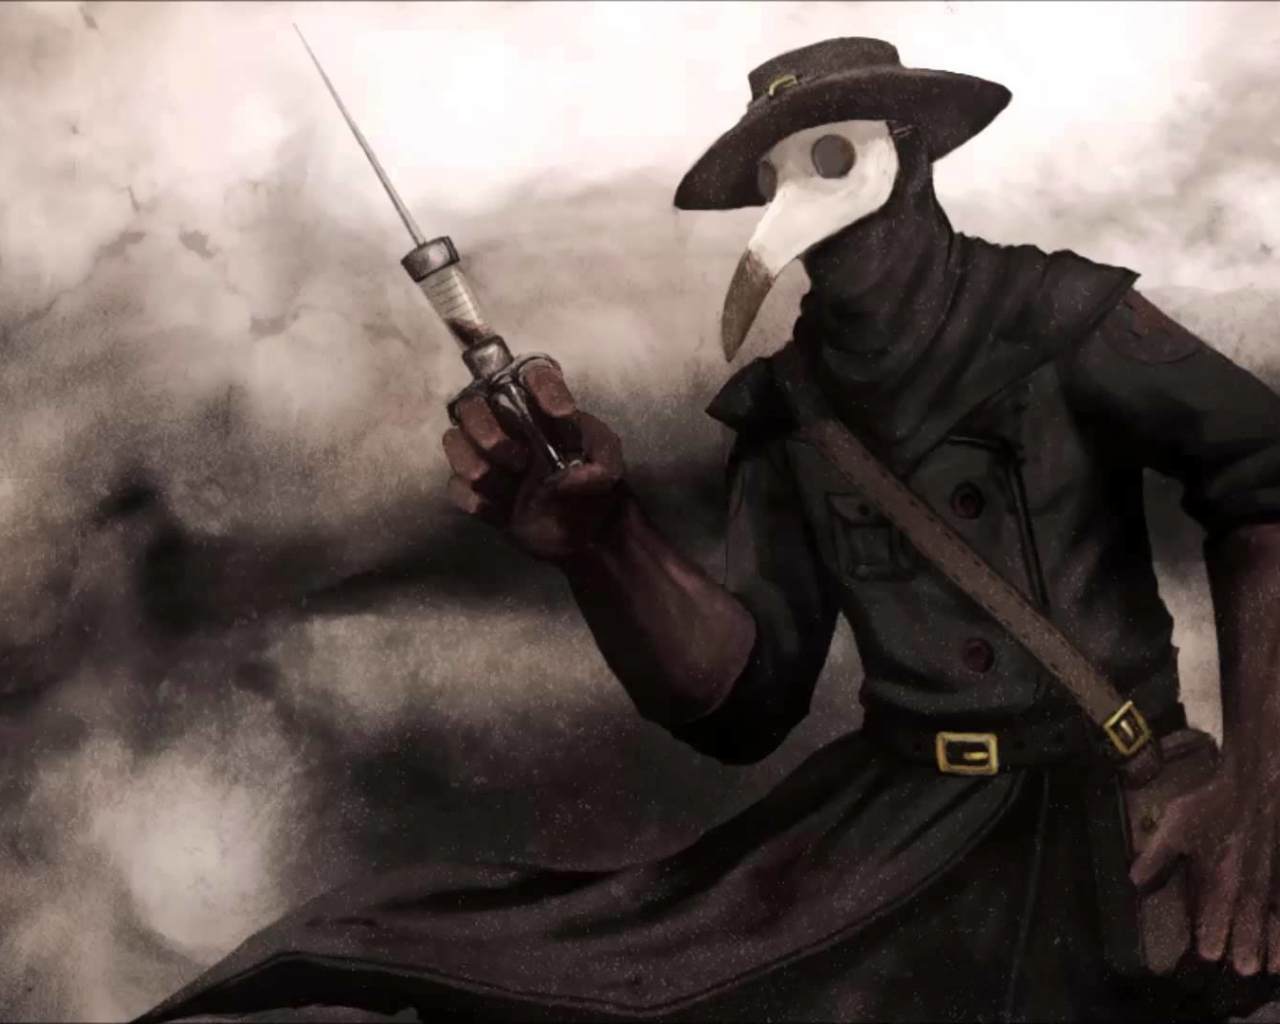 Free download Plague Doctor Wallpaper 78 images [1920x1080 ...